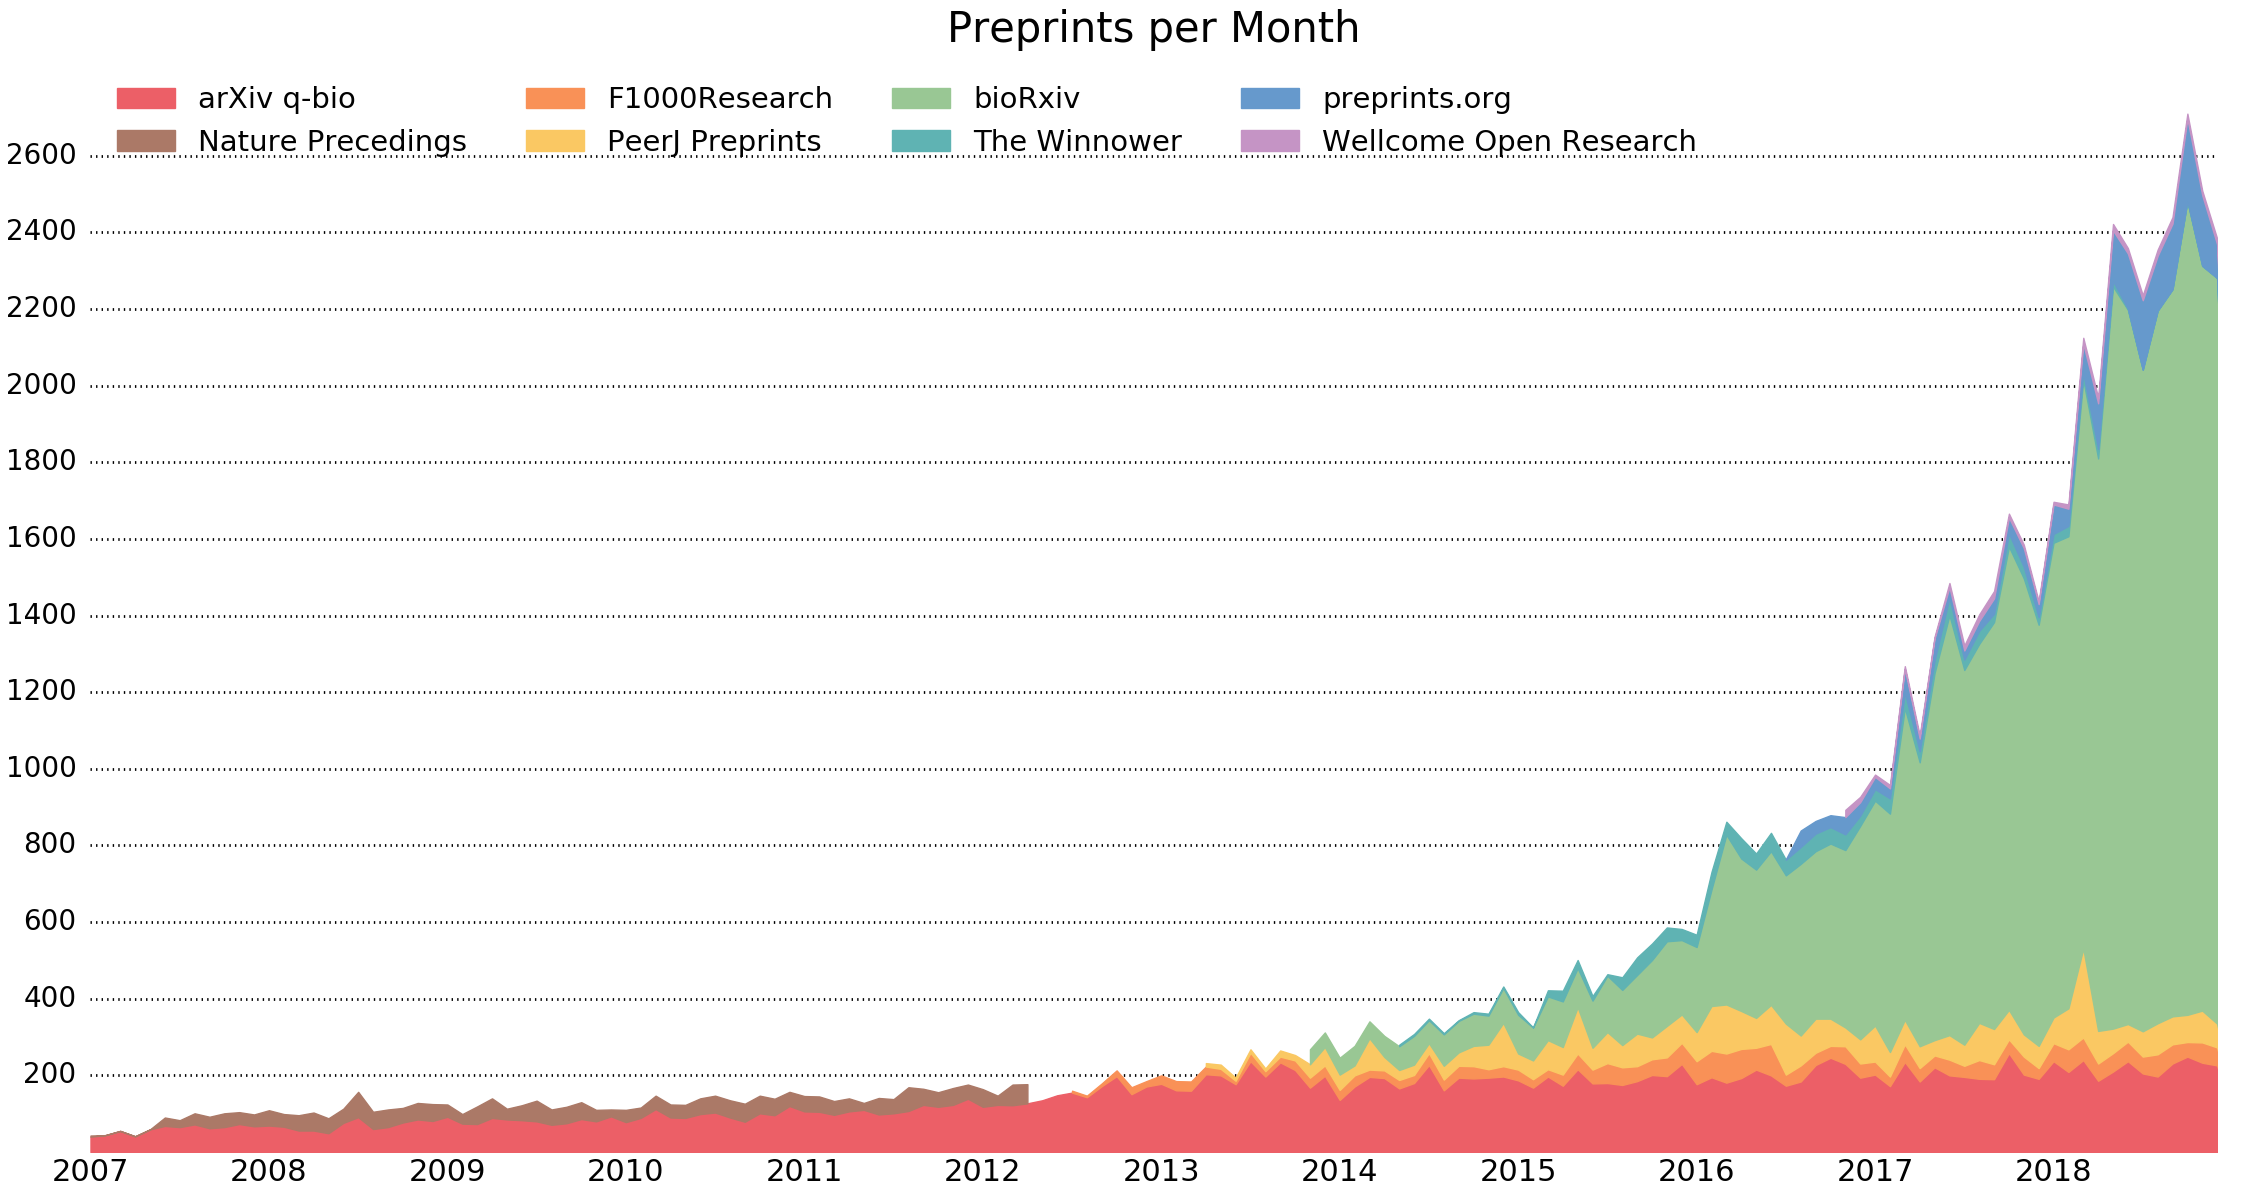 Rise of preprints; source:    http://www.prepubmed.org/monthly_stats/